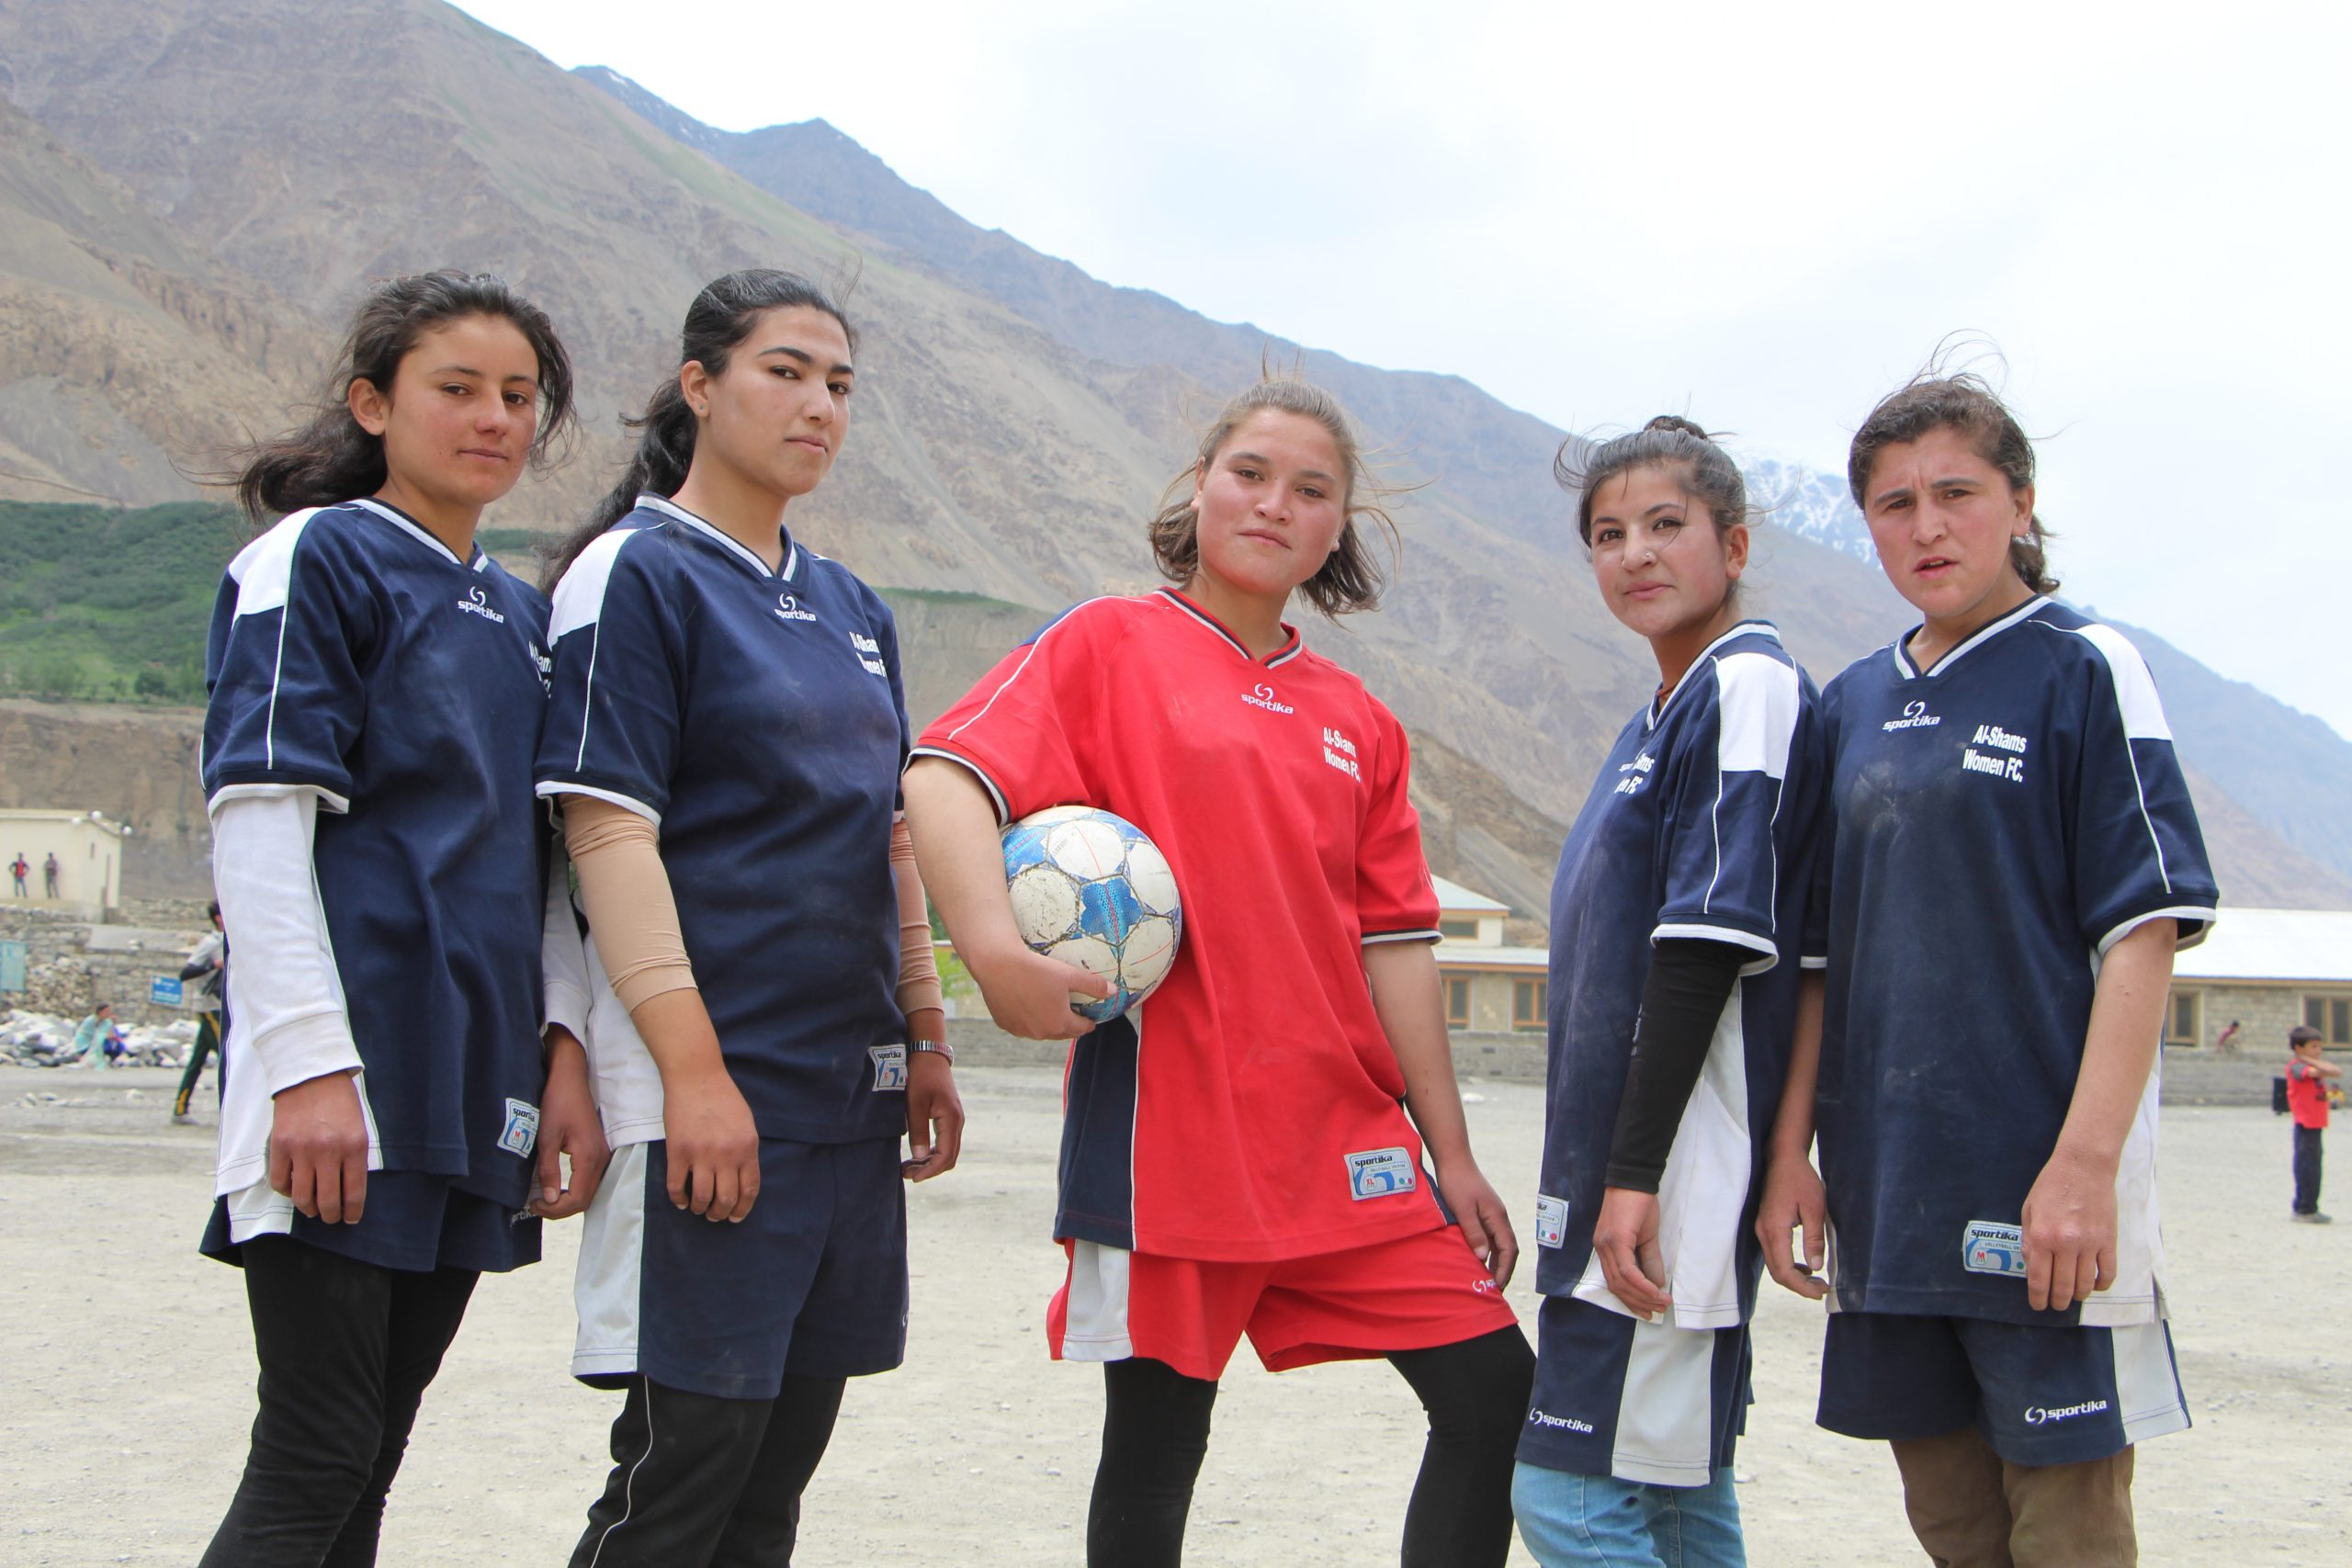 5 of the Al-Shams Women's FC team